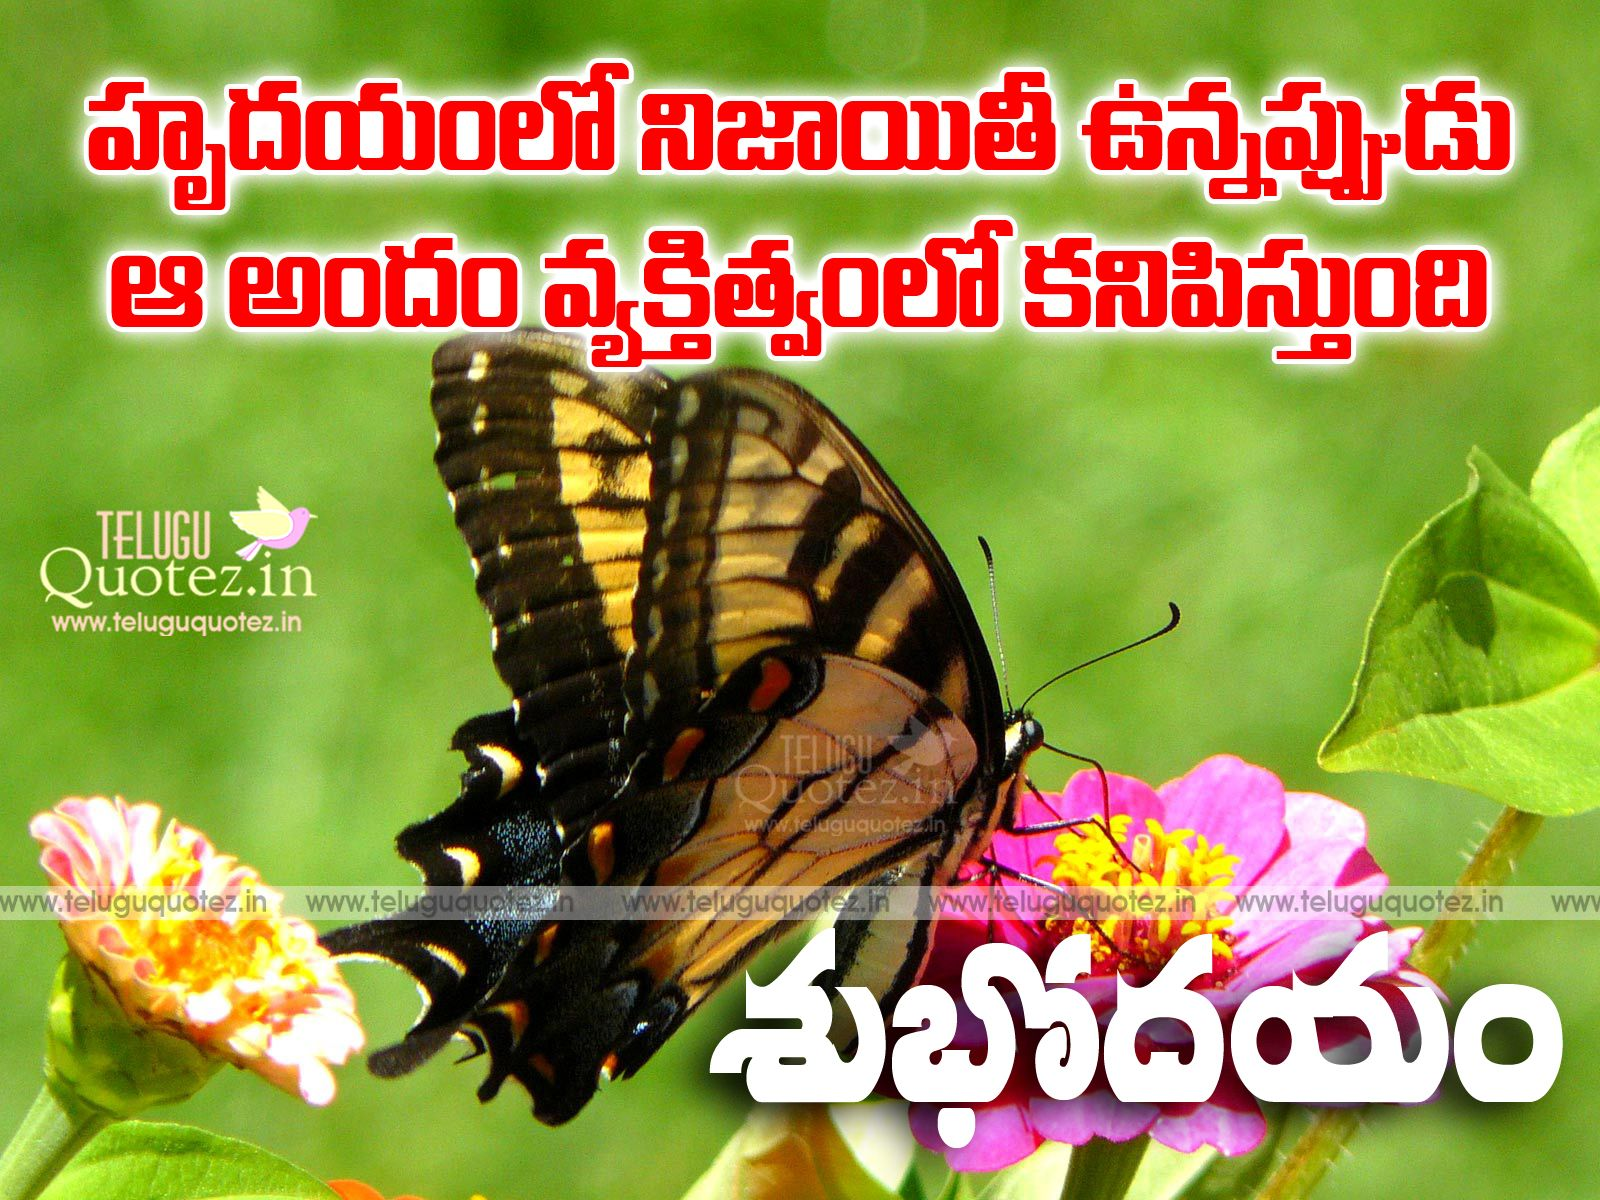 Best Good Morning Quotes In Telugu Greetings And Wishes   Teluguquotez.in  |Telugu Quotes|Tamil Quotes|Bengali Quotes|hindi Quotes